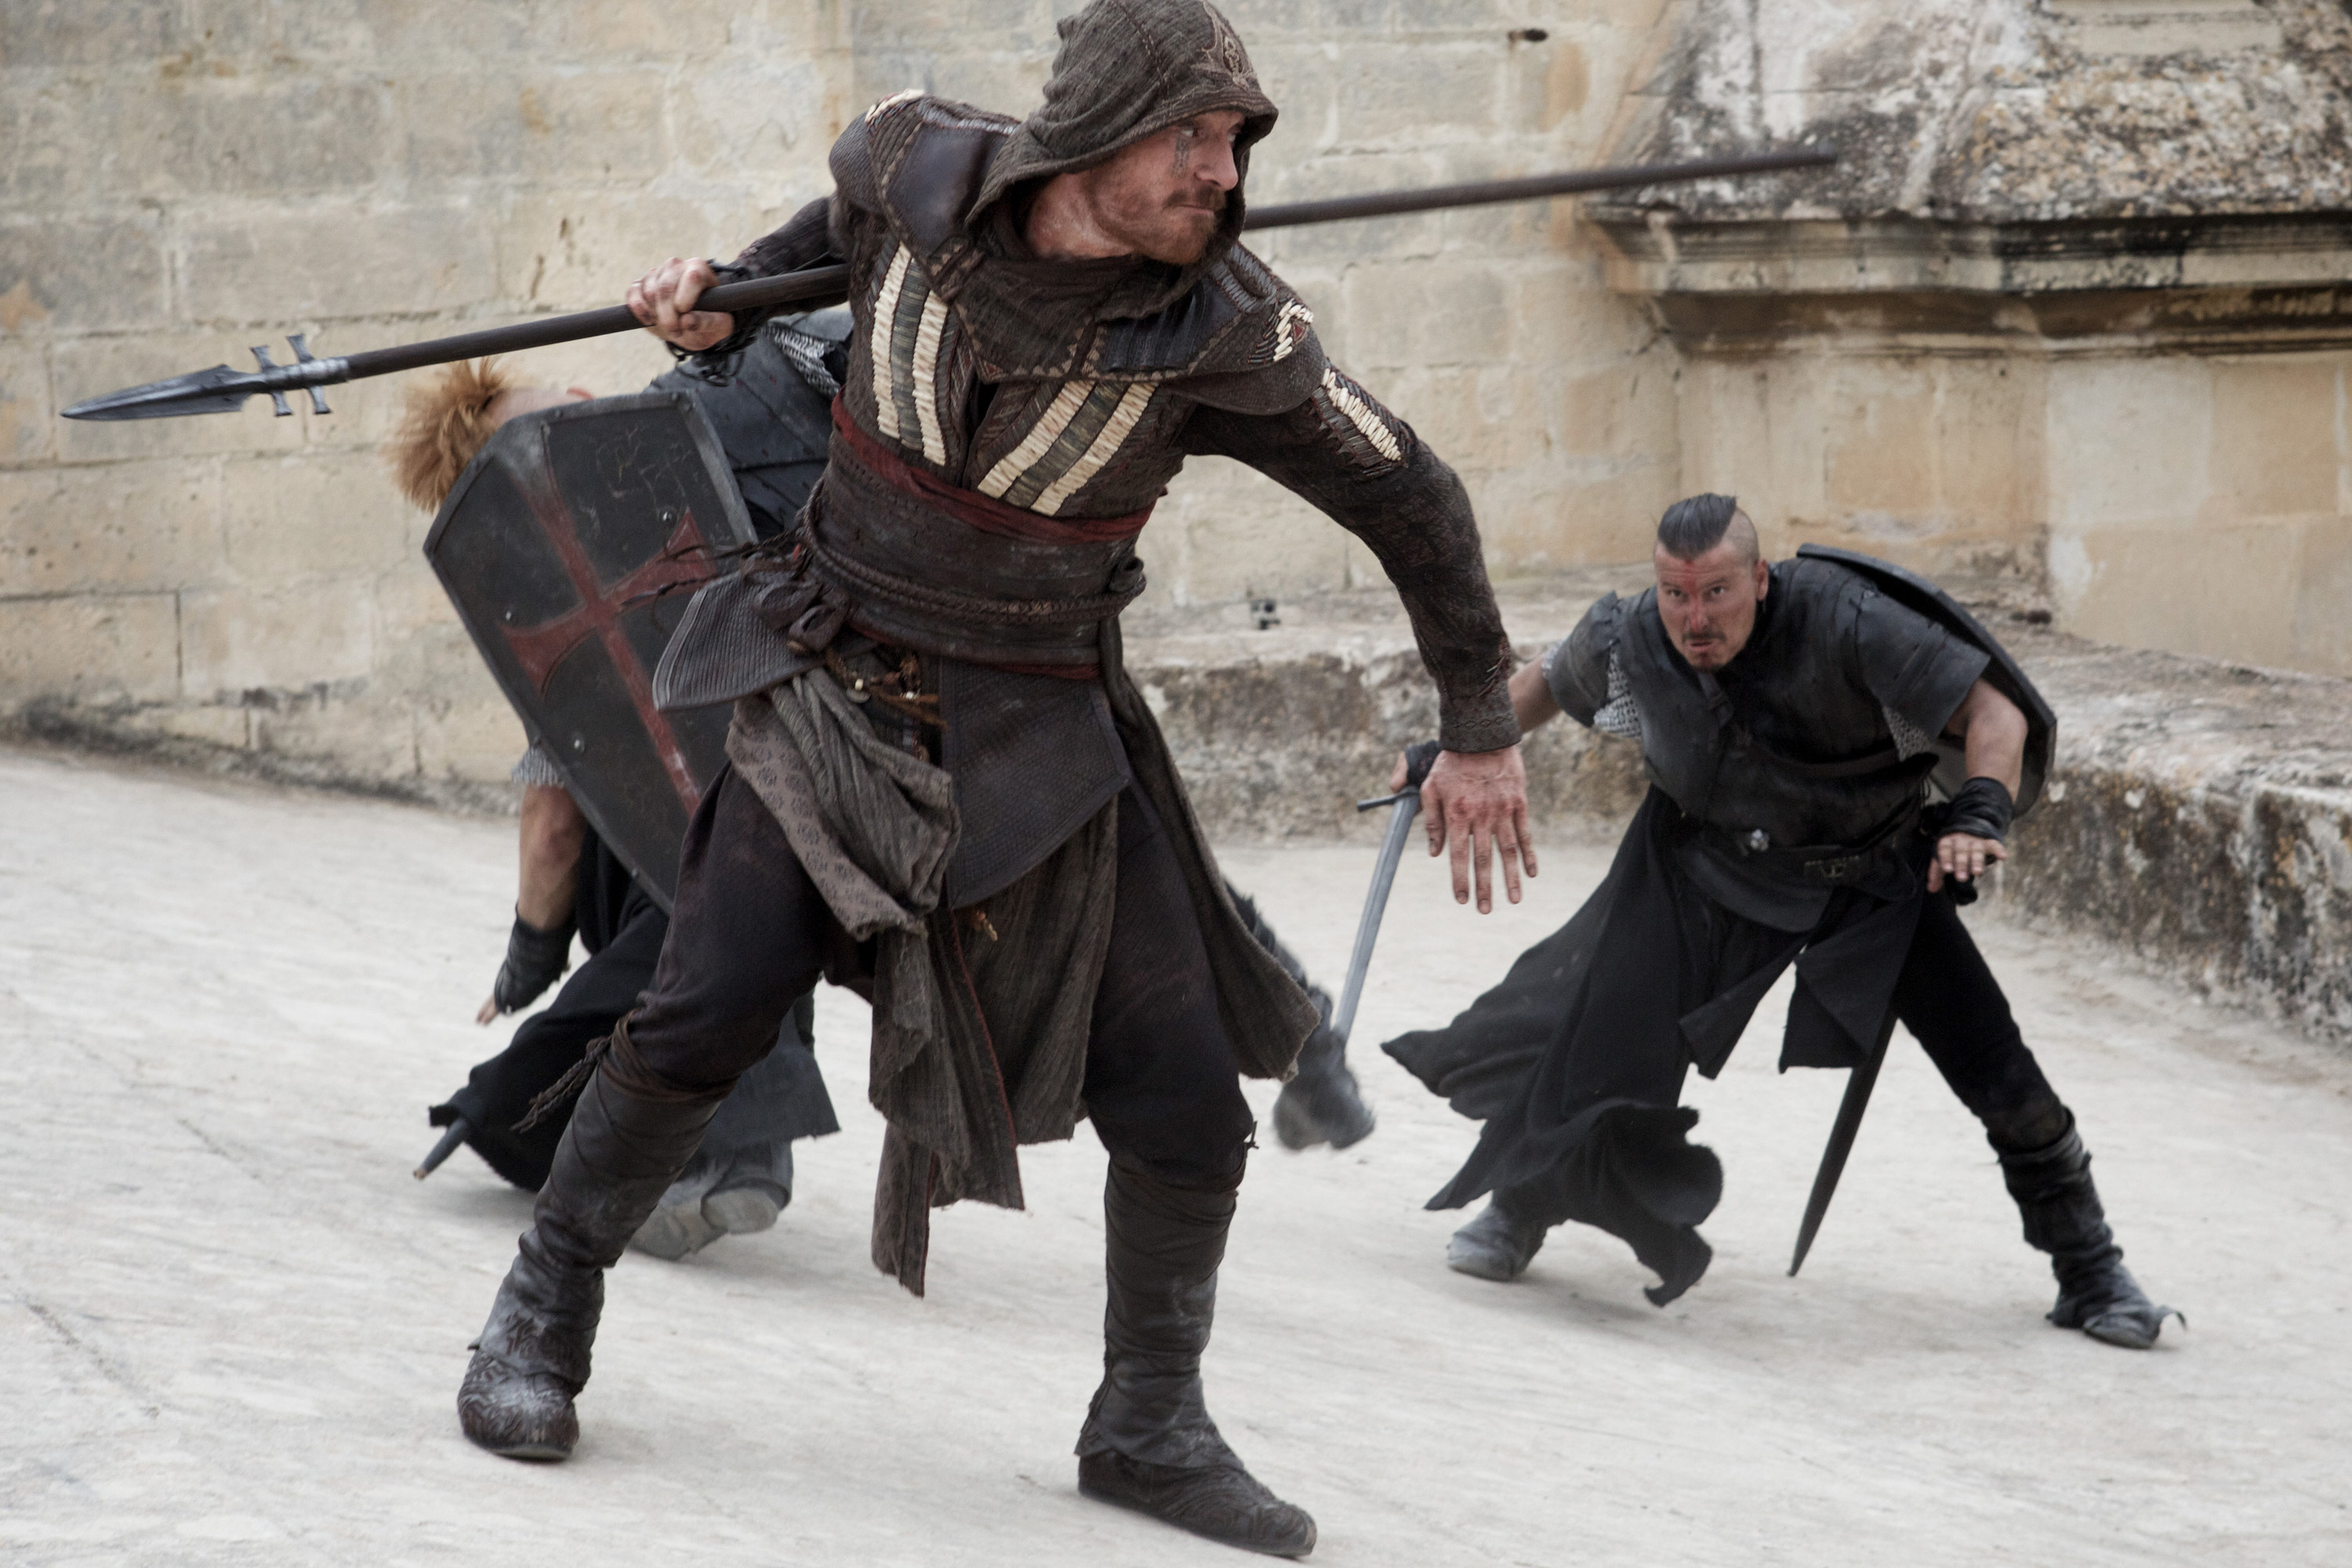 Michael Fassbender's character fighting